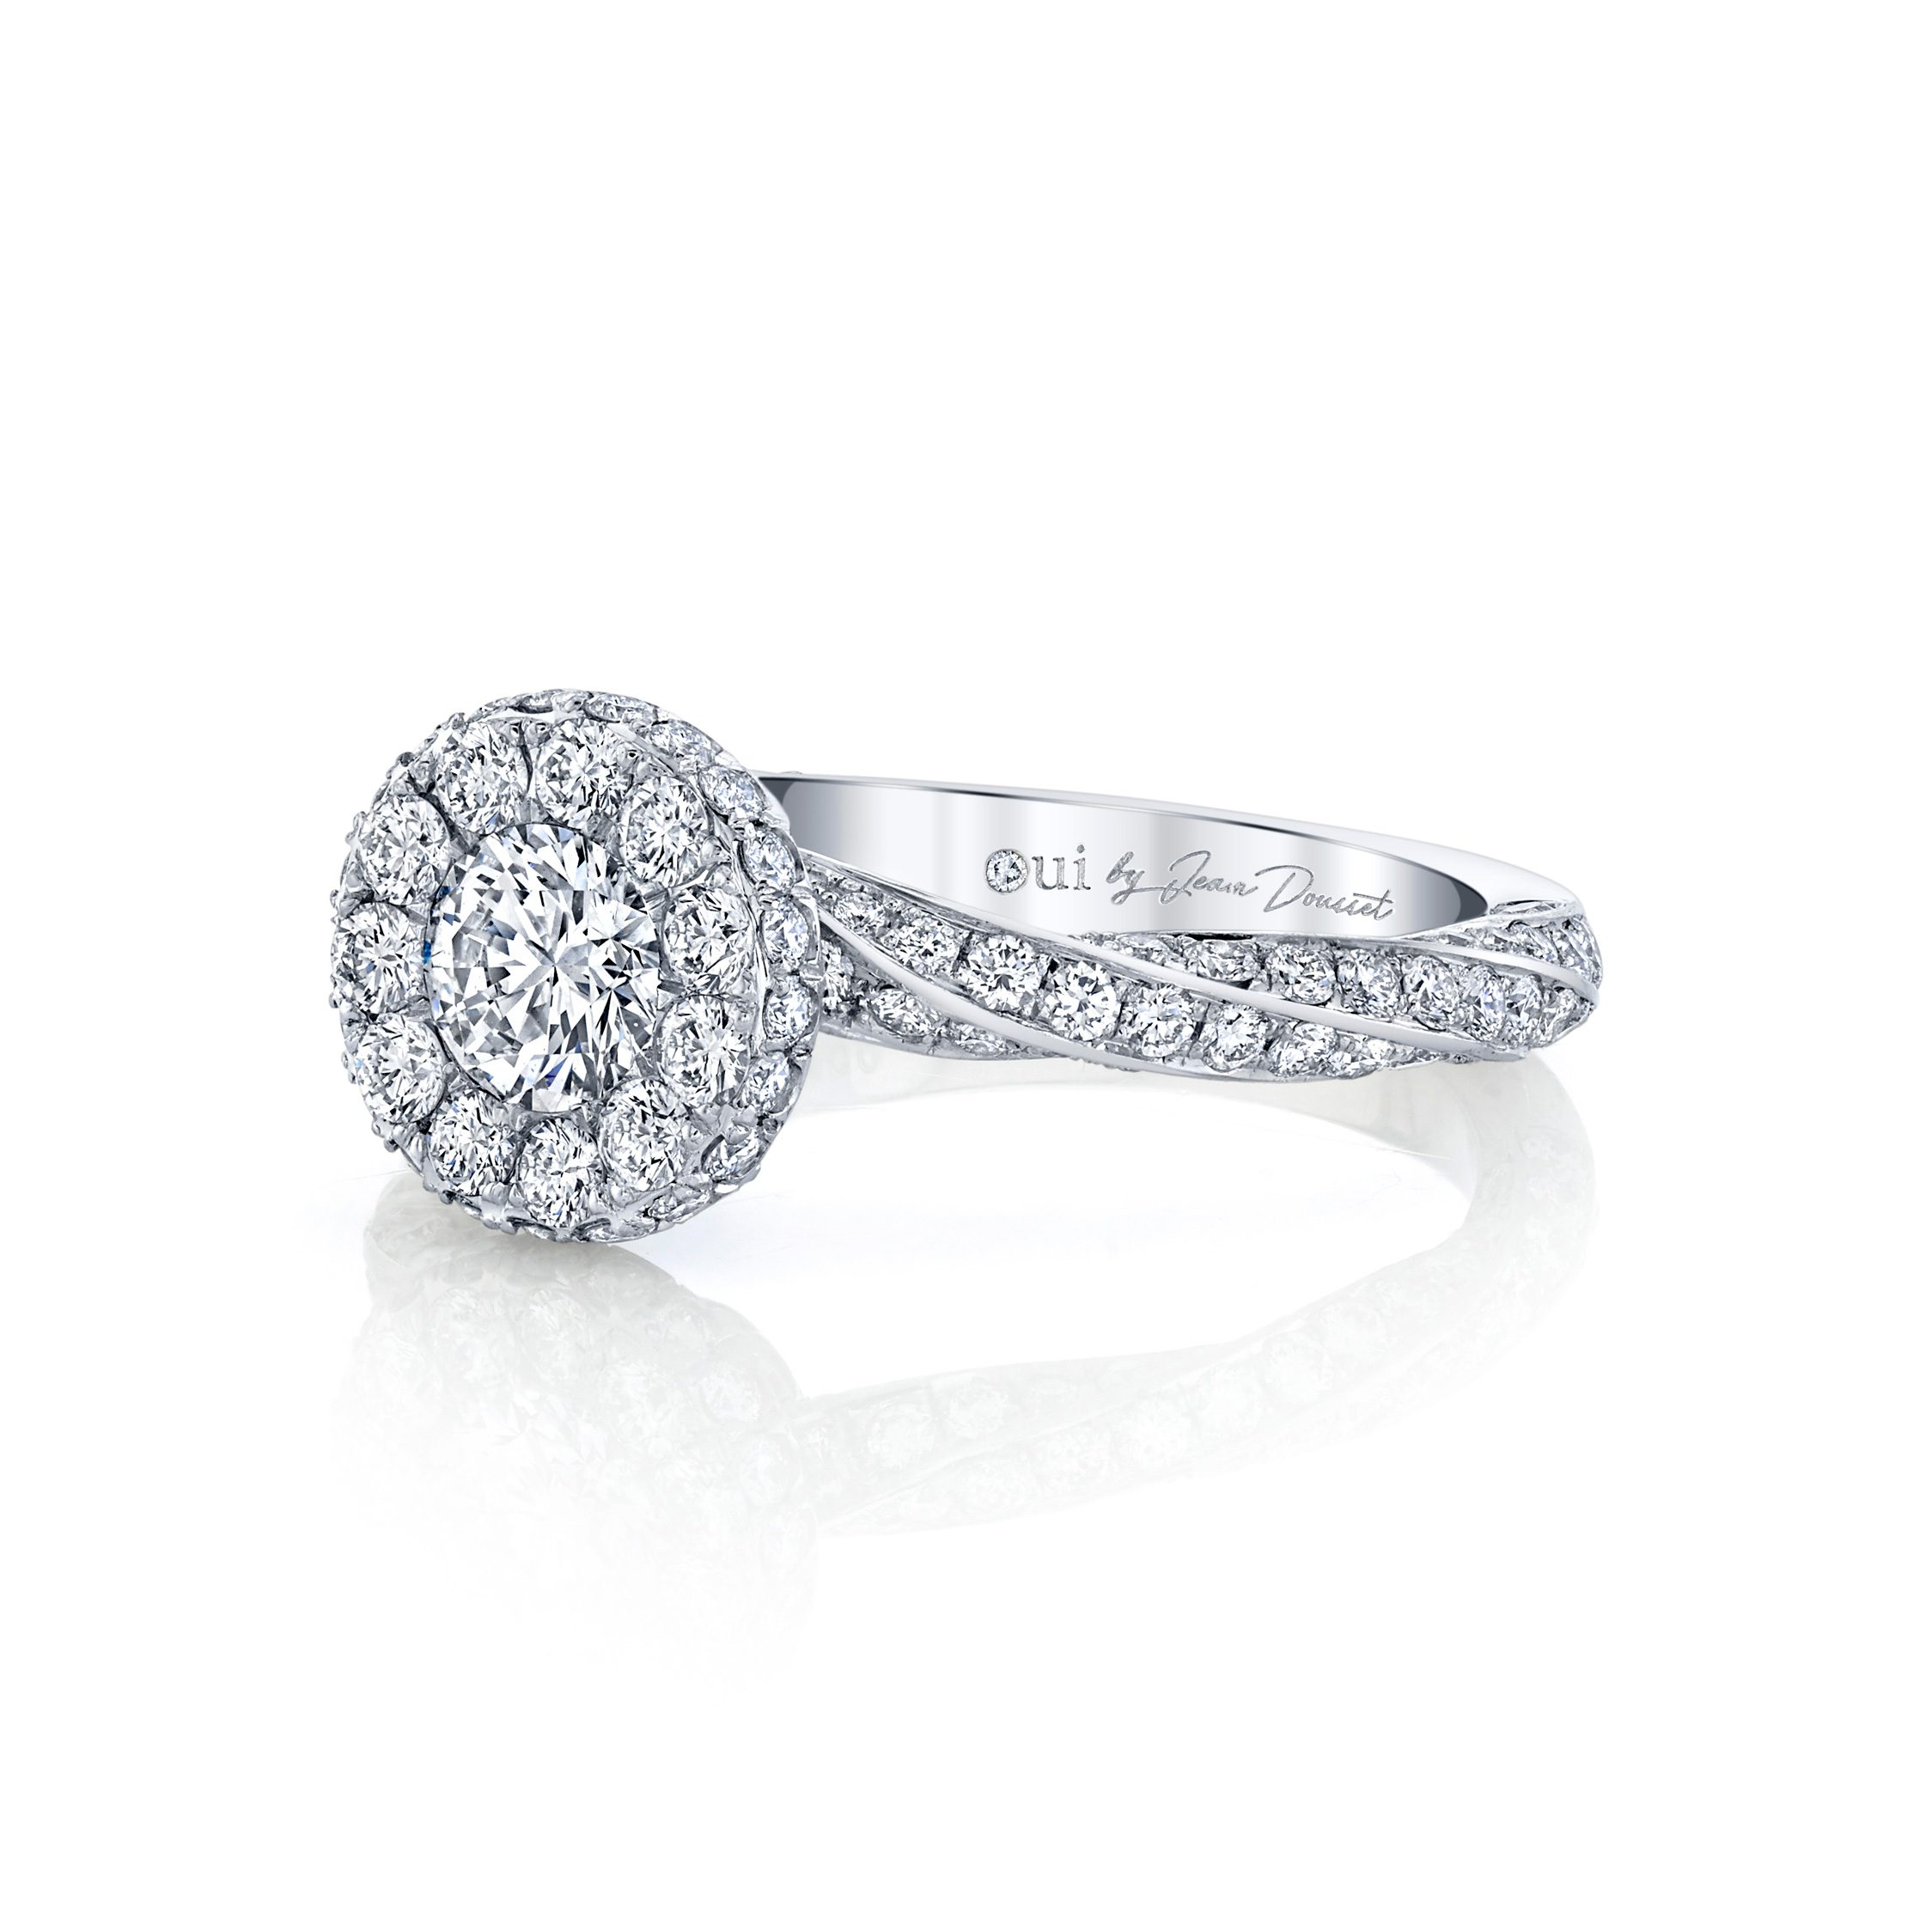 Camille Round Brilliant Seamless Halo® Engagement Ring with diamond pavé in 18k White Gold Side View by Oui by Jean Dousset